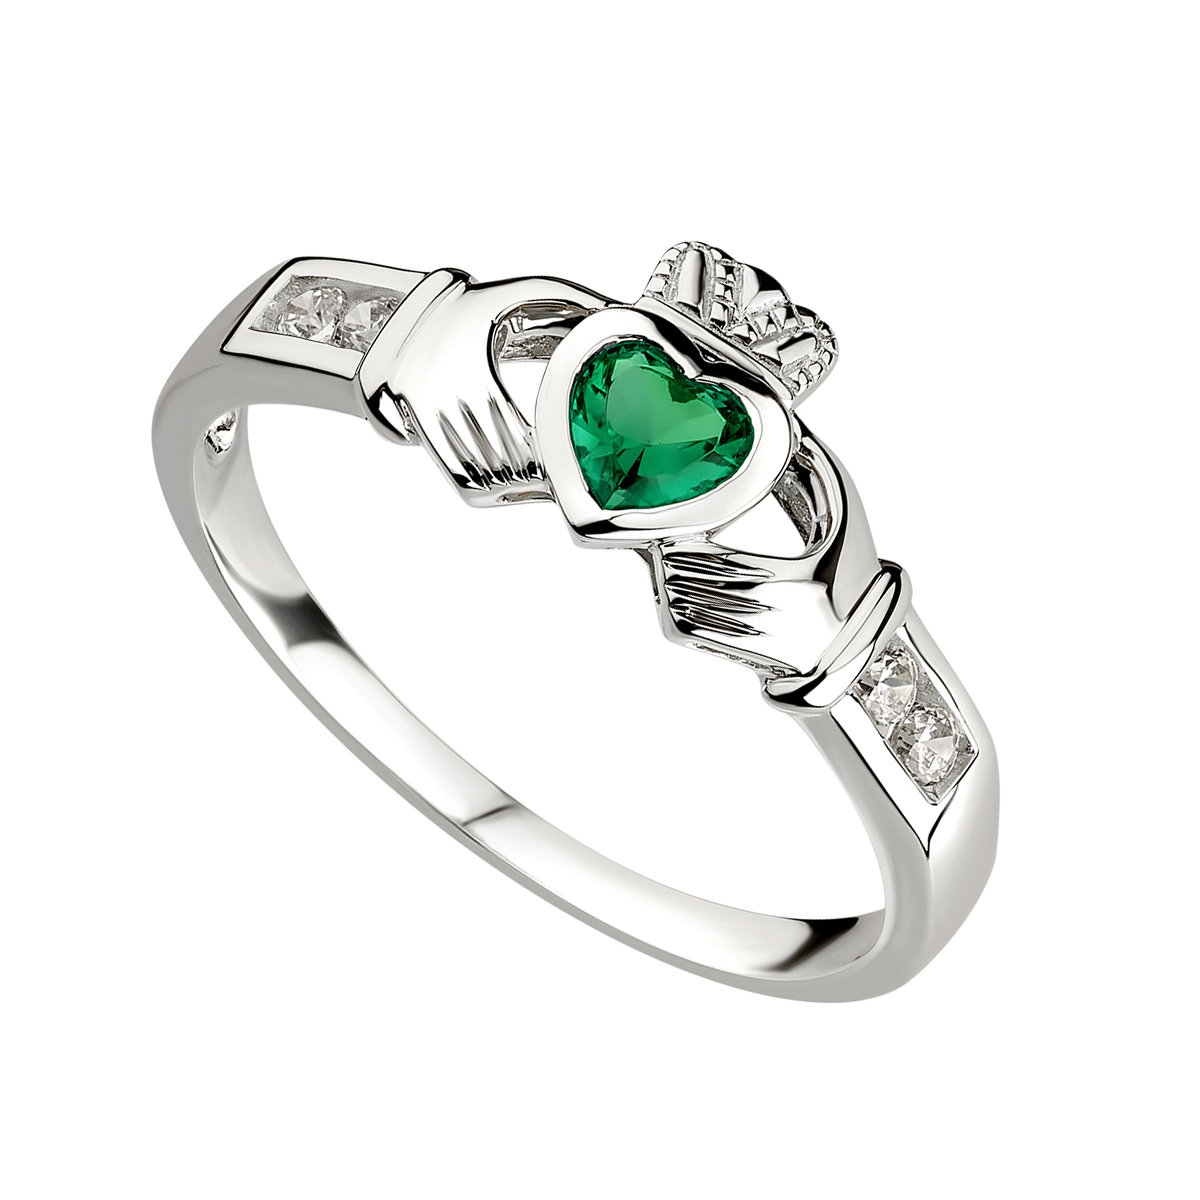 sterling silver claddagh emerald ring s2594 from Solvar